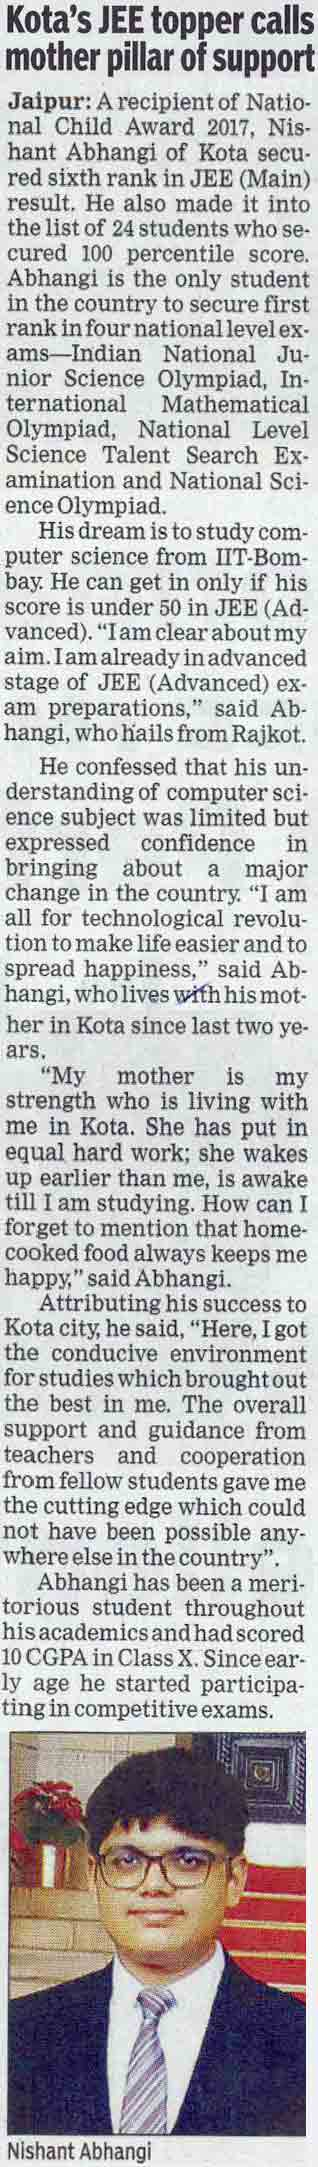 Kota's JEE topper calls mother pillar of support